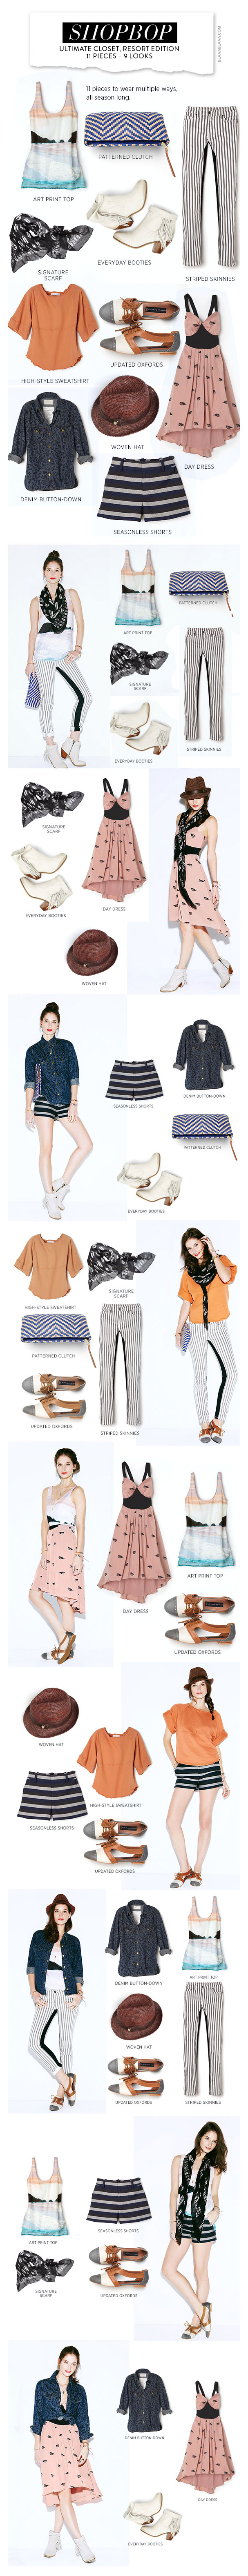 Shopbop Ultimate Closet Resort Edition 11 Pieces - 9 Looks